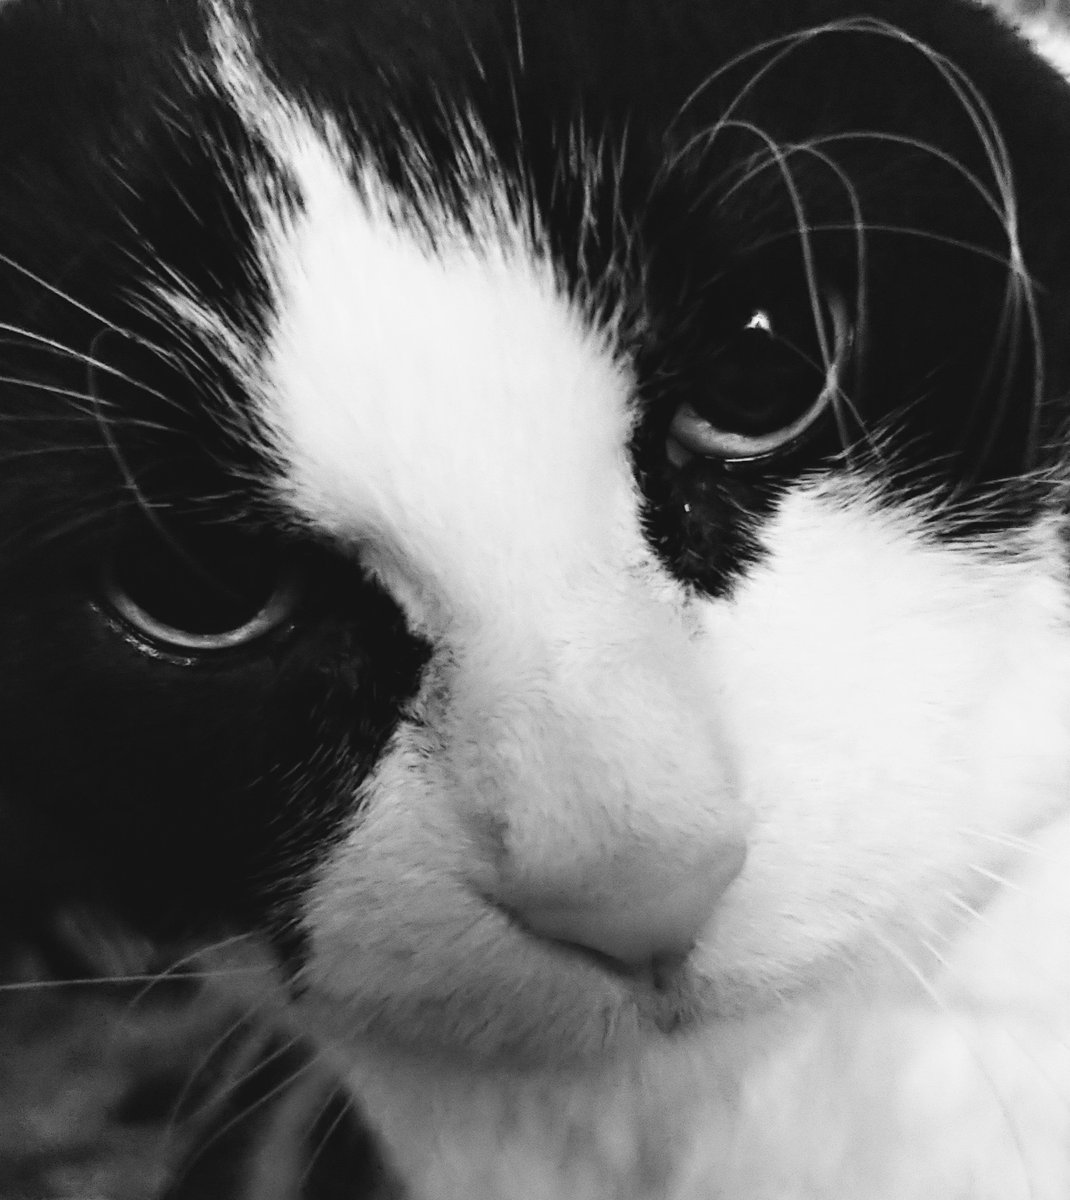 Silly human, my tuxie picture in b&w is exactly like my tuxie picture in color! 😹😺😼 #catsnoirfriday   #CatsOfTwitter #FridayVibes #FridayThoughts #FridayFunday #cats #tuxie #FridayFeeling #CatsOnTwitter #jellybellyfriday https://t.co/X51W3X6CiD